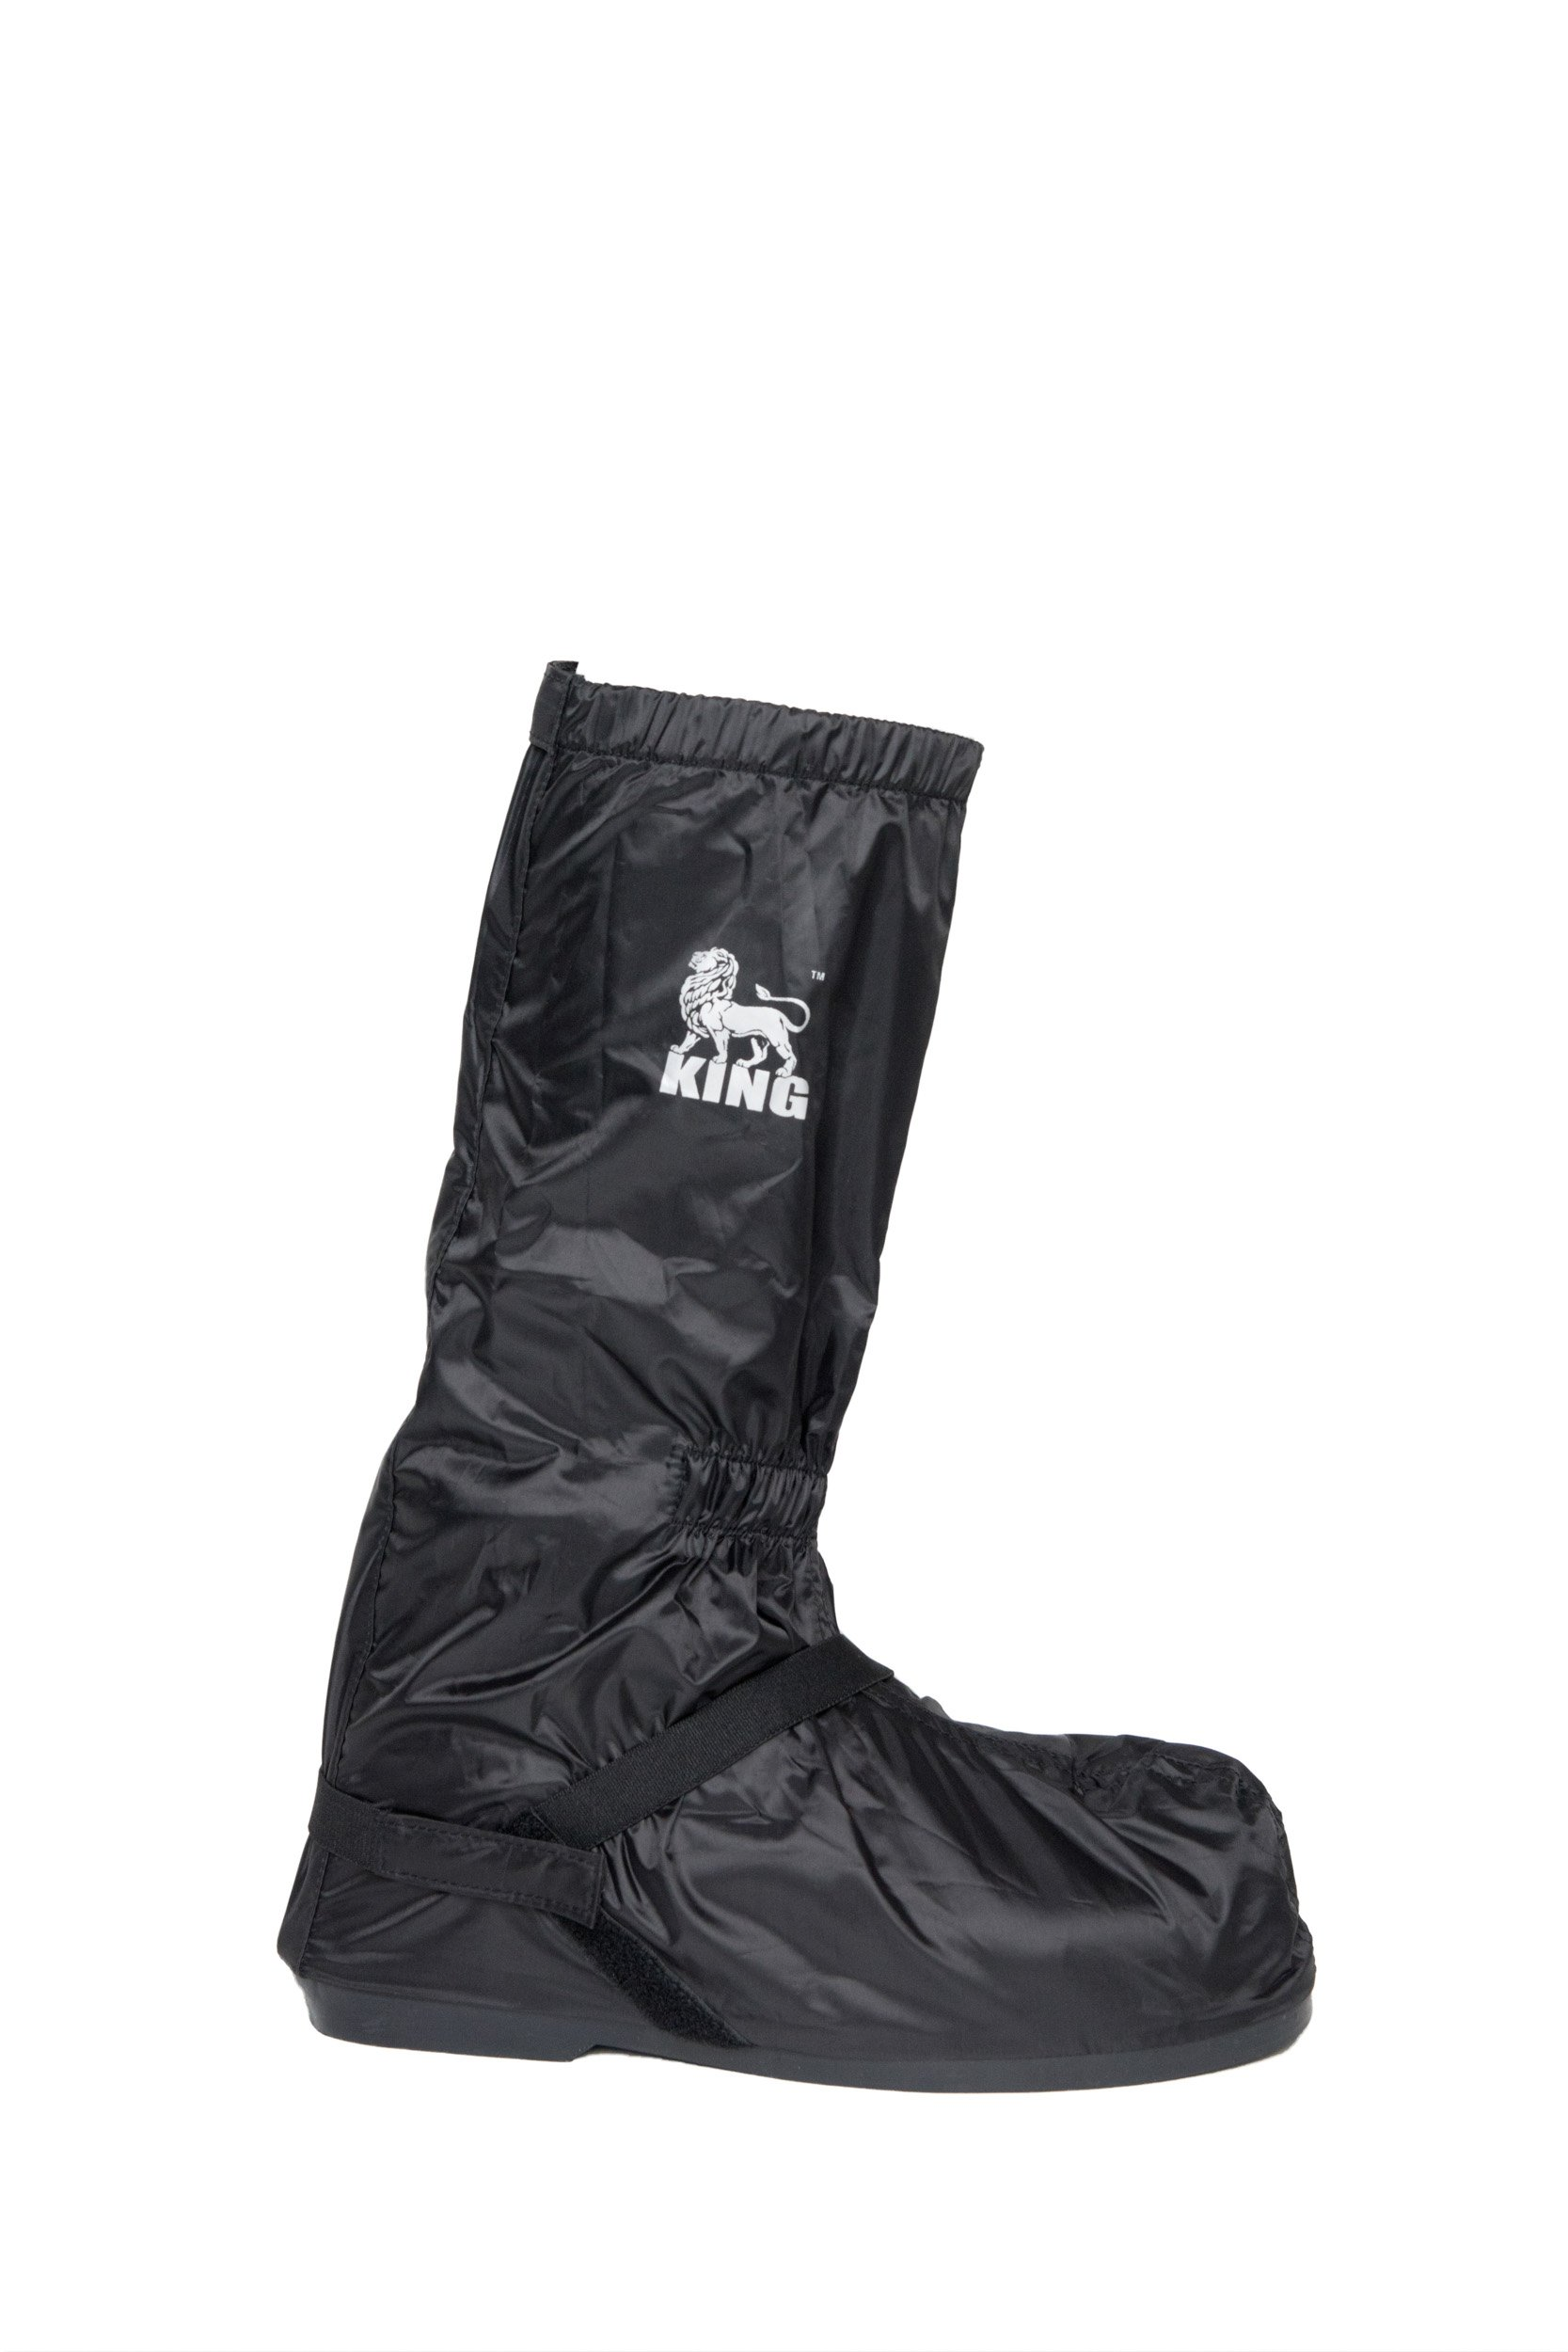 Protect the King Motorcycle Rain Boot Cover with Hard Sole (X-Large, Black/Silver)